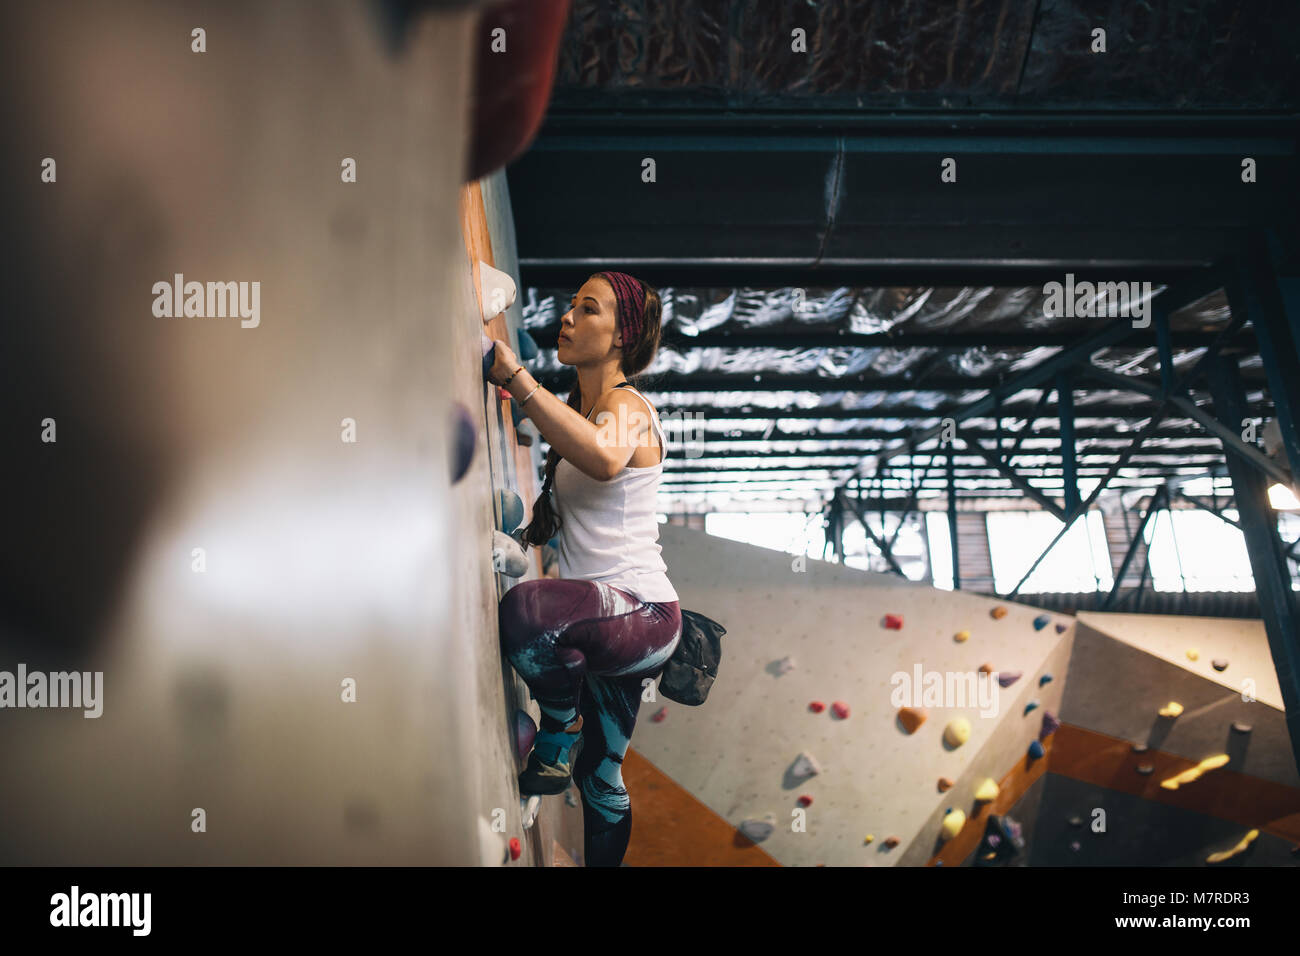 Woman bouldering at an indoor climbing centre. Climber practicing rock climbing at an indoor climbing gym. - Stock Image